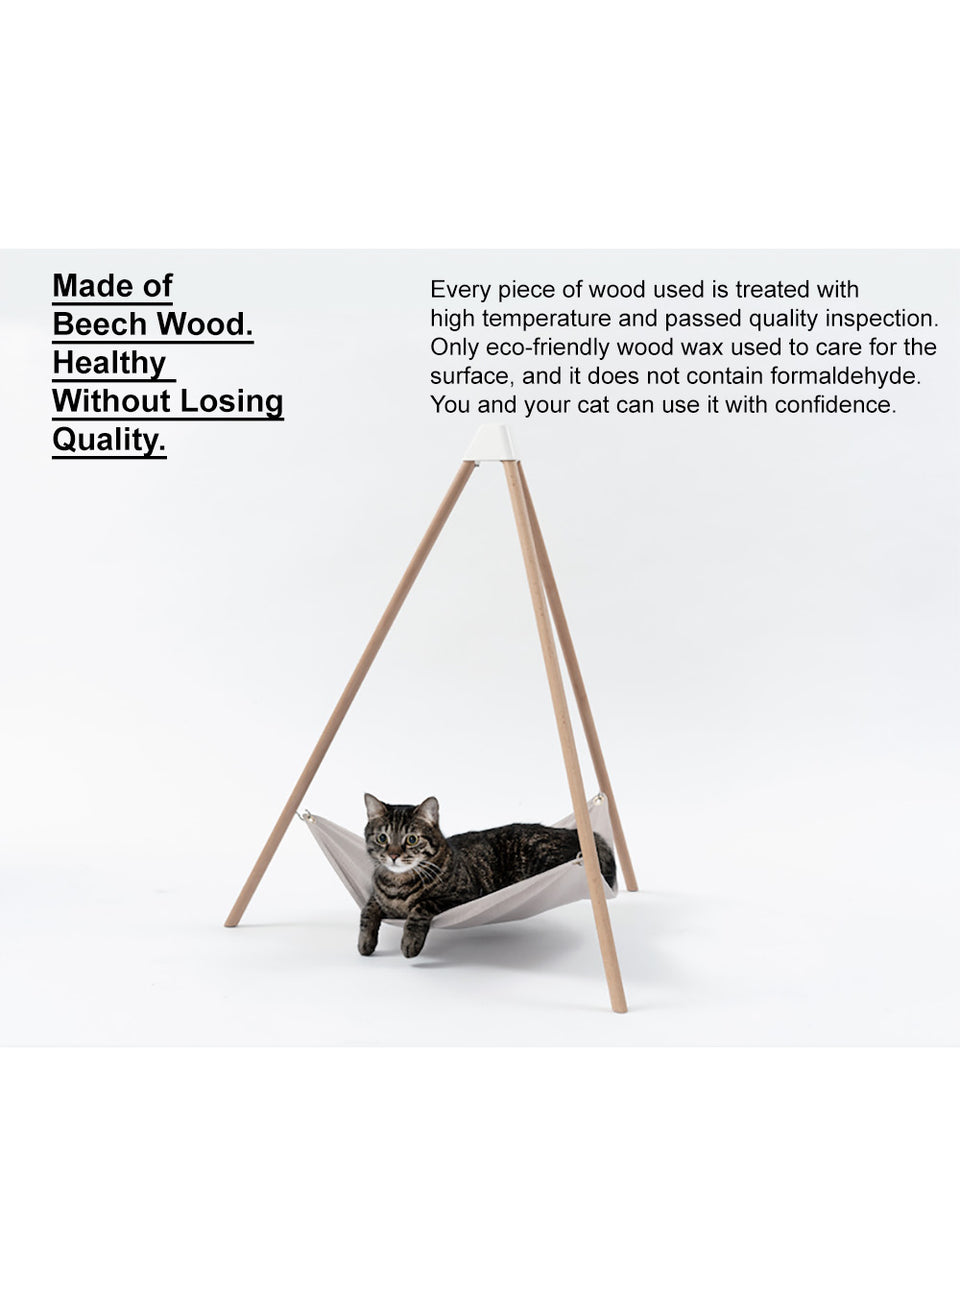 Wooden Pet Bed - Triangular Hammock Type